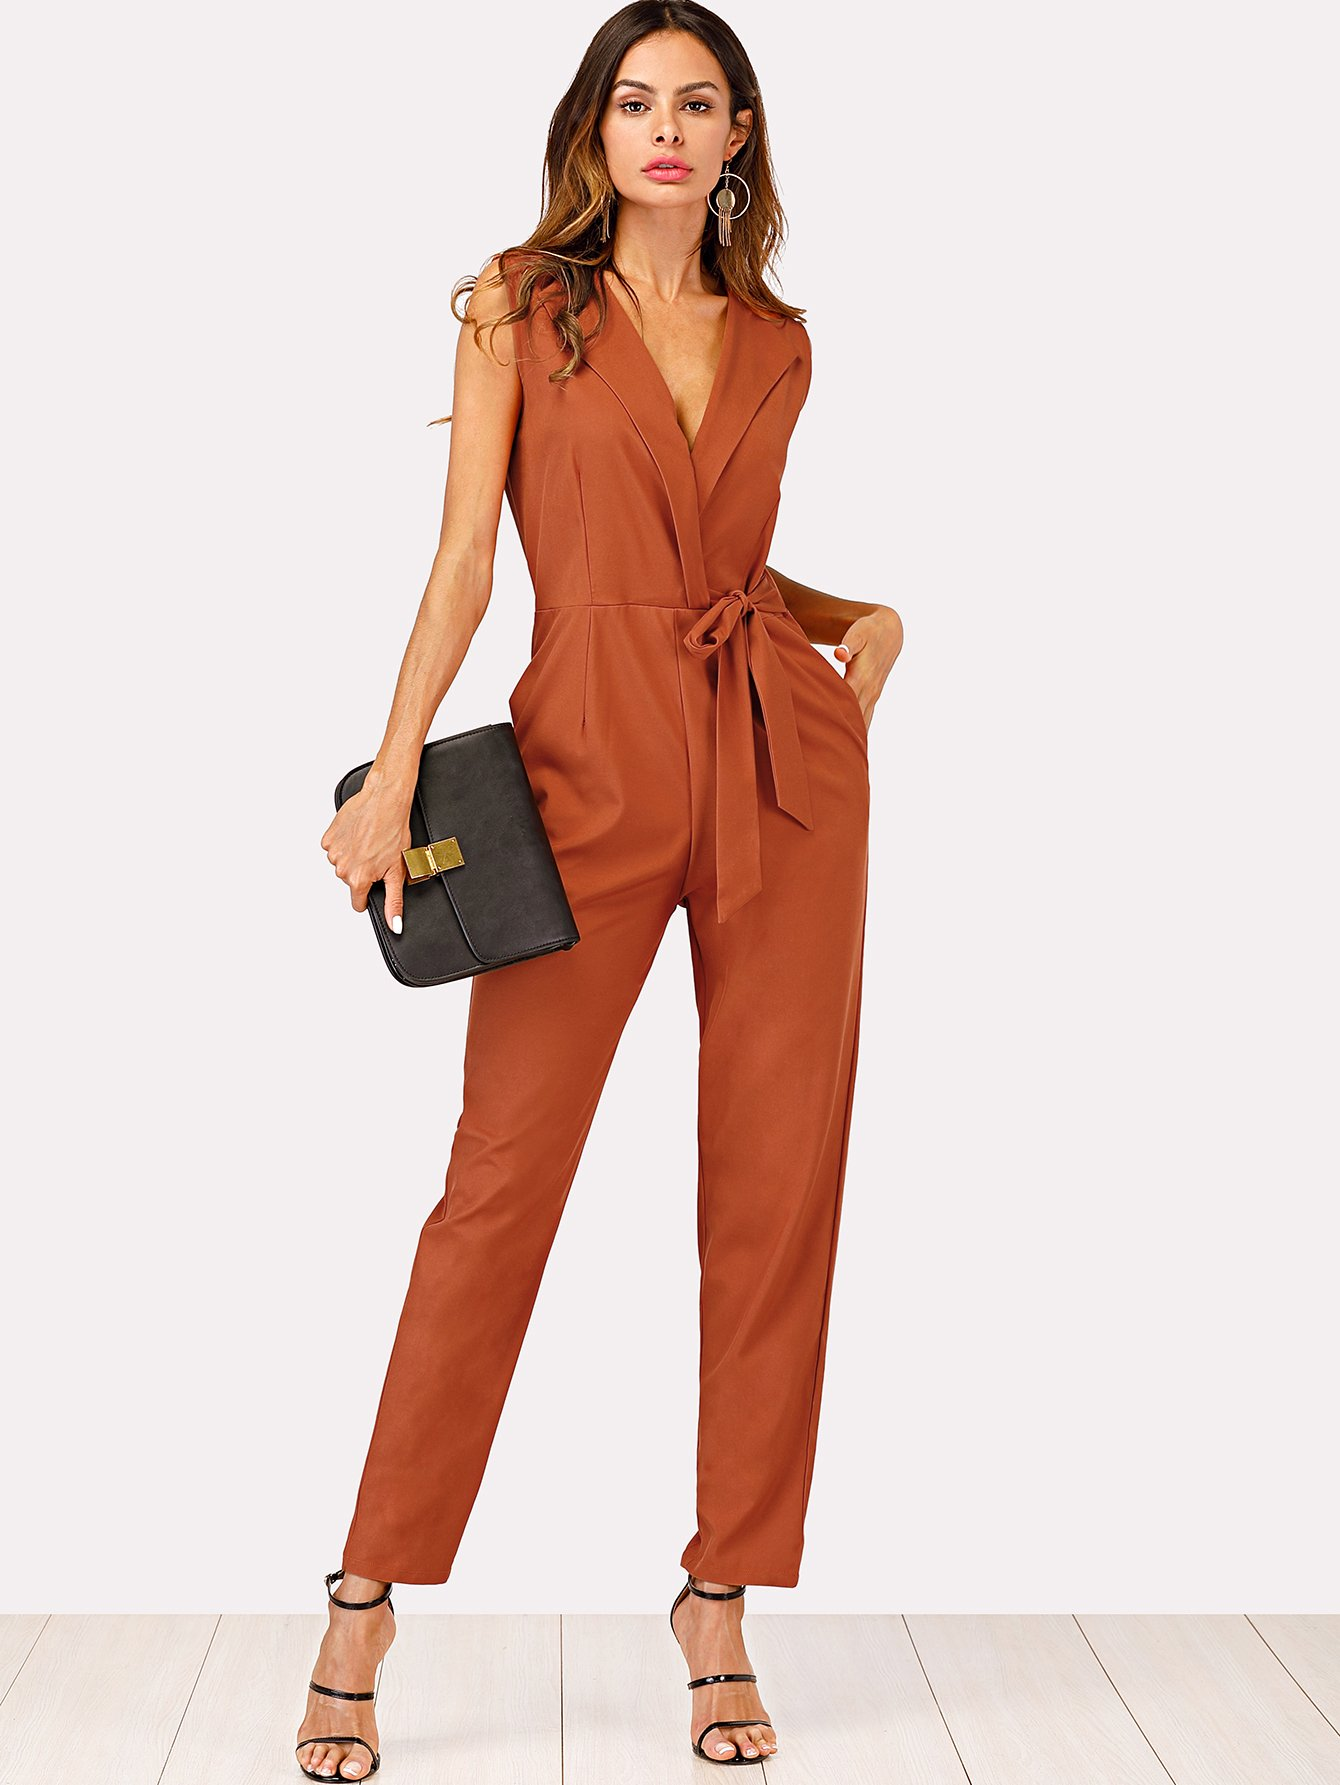 Zip Back Shawl Collar Knot Jumpsuits zip up back knot plaid top